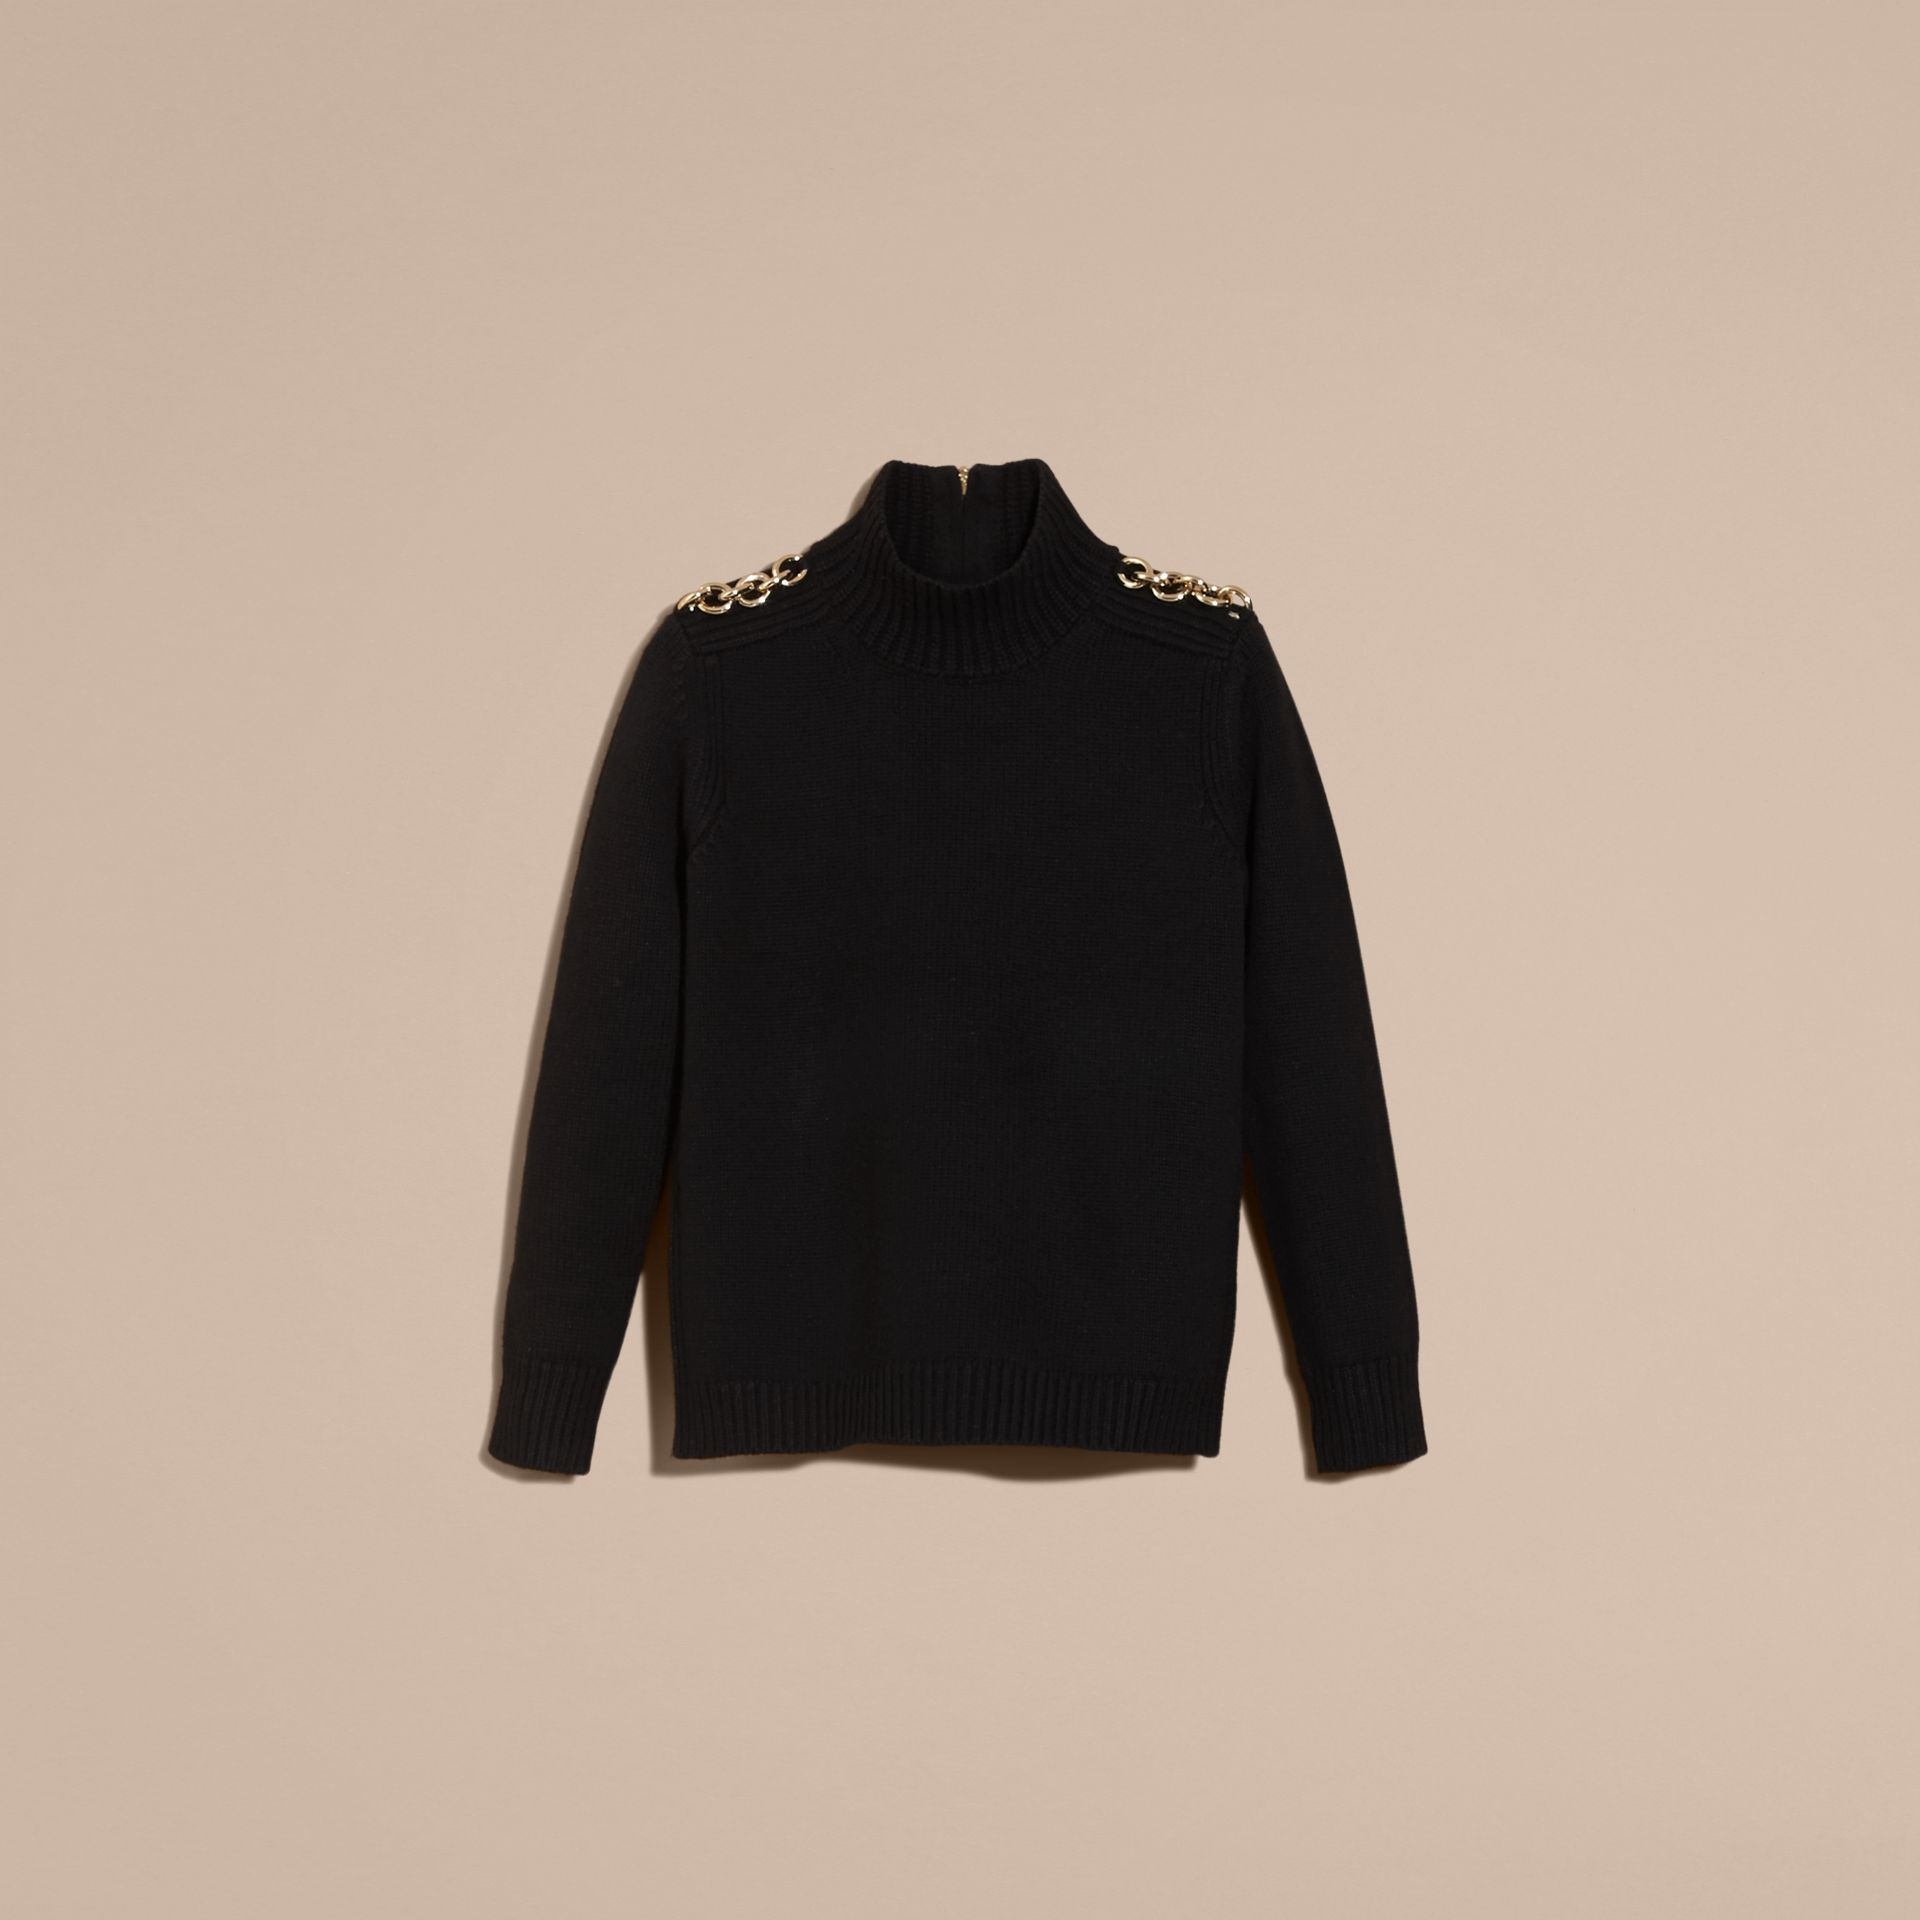 Regimental Detail Wool Cashmere High-neck Sweater - gallery image 4